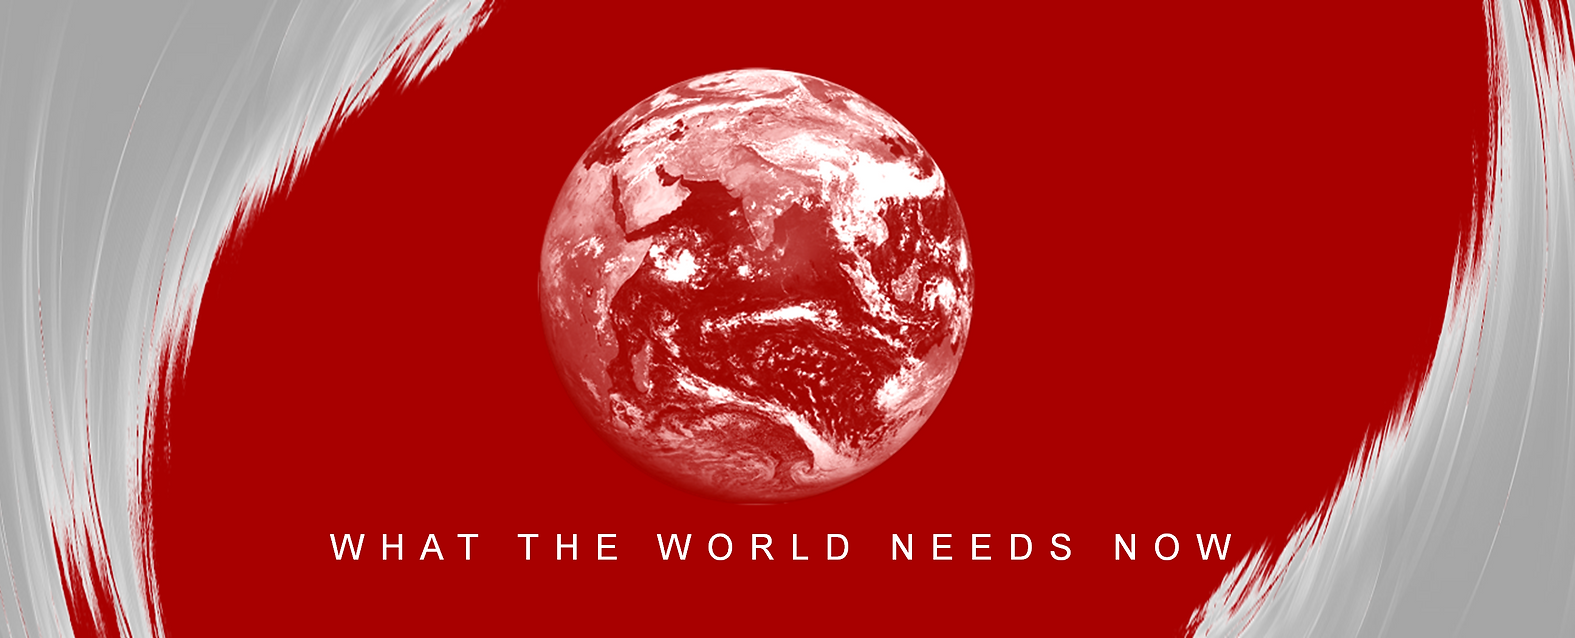 WHAT THE WORLD NEEDS NOW - Web Banner (2